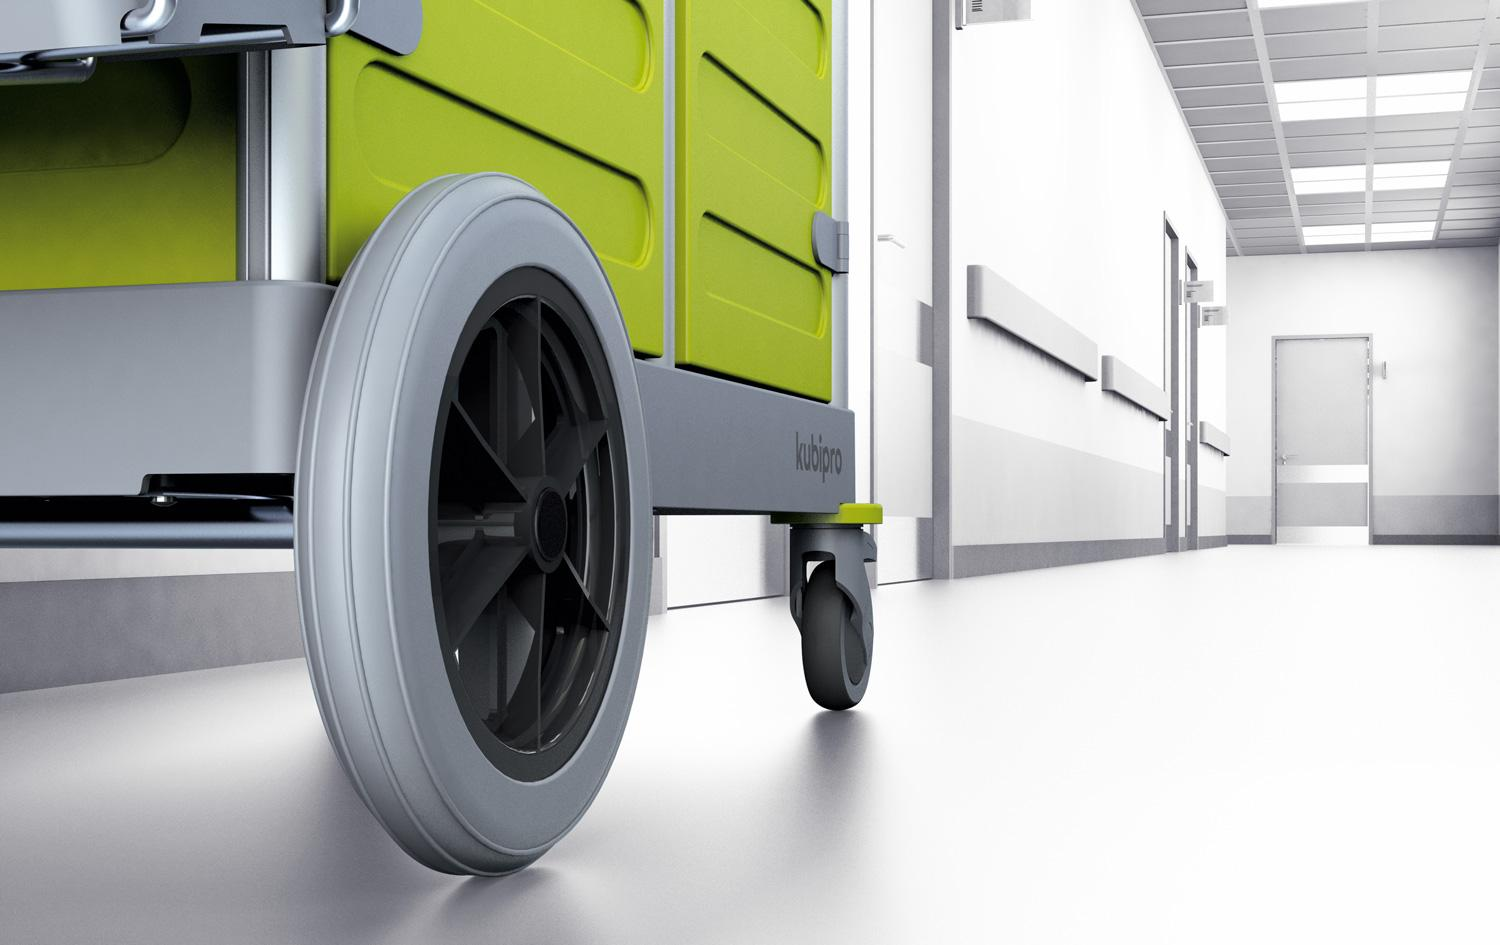 Kubi trolley for the cleaning operation in the healthcare sector